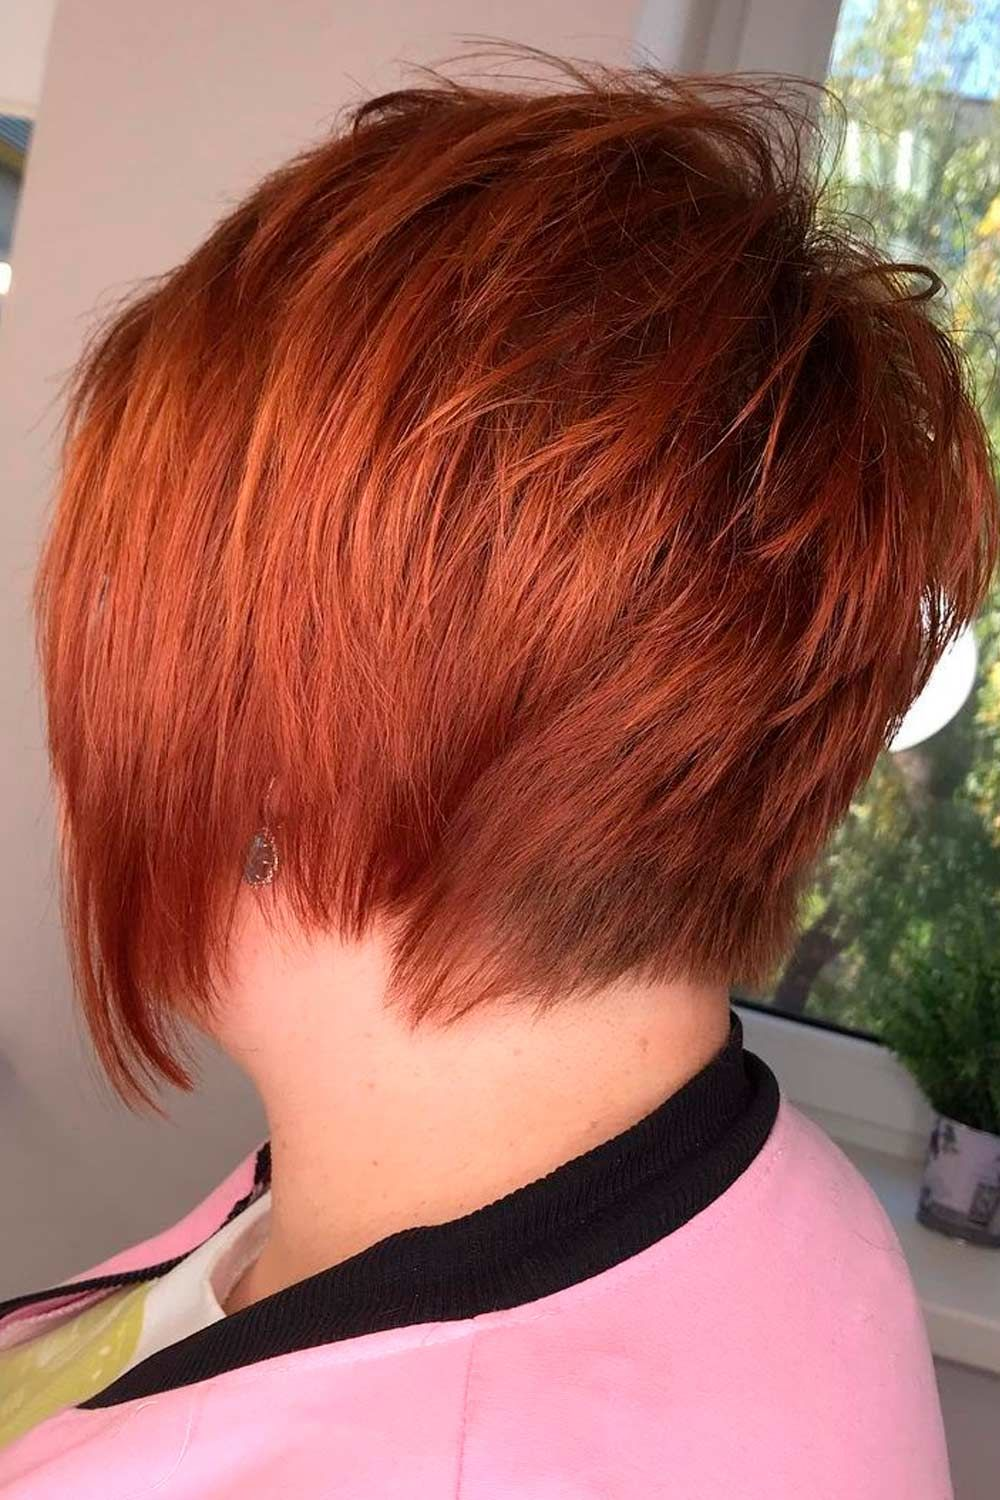 Edgy Short Layered Haircut for Thin Hair